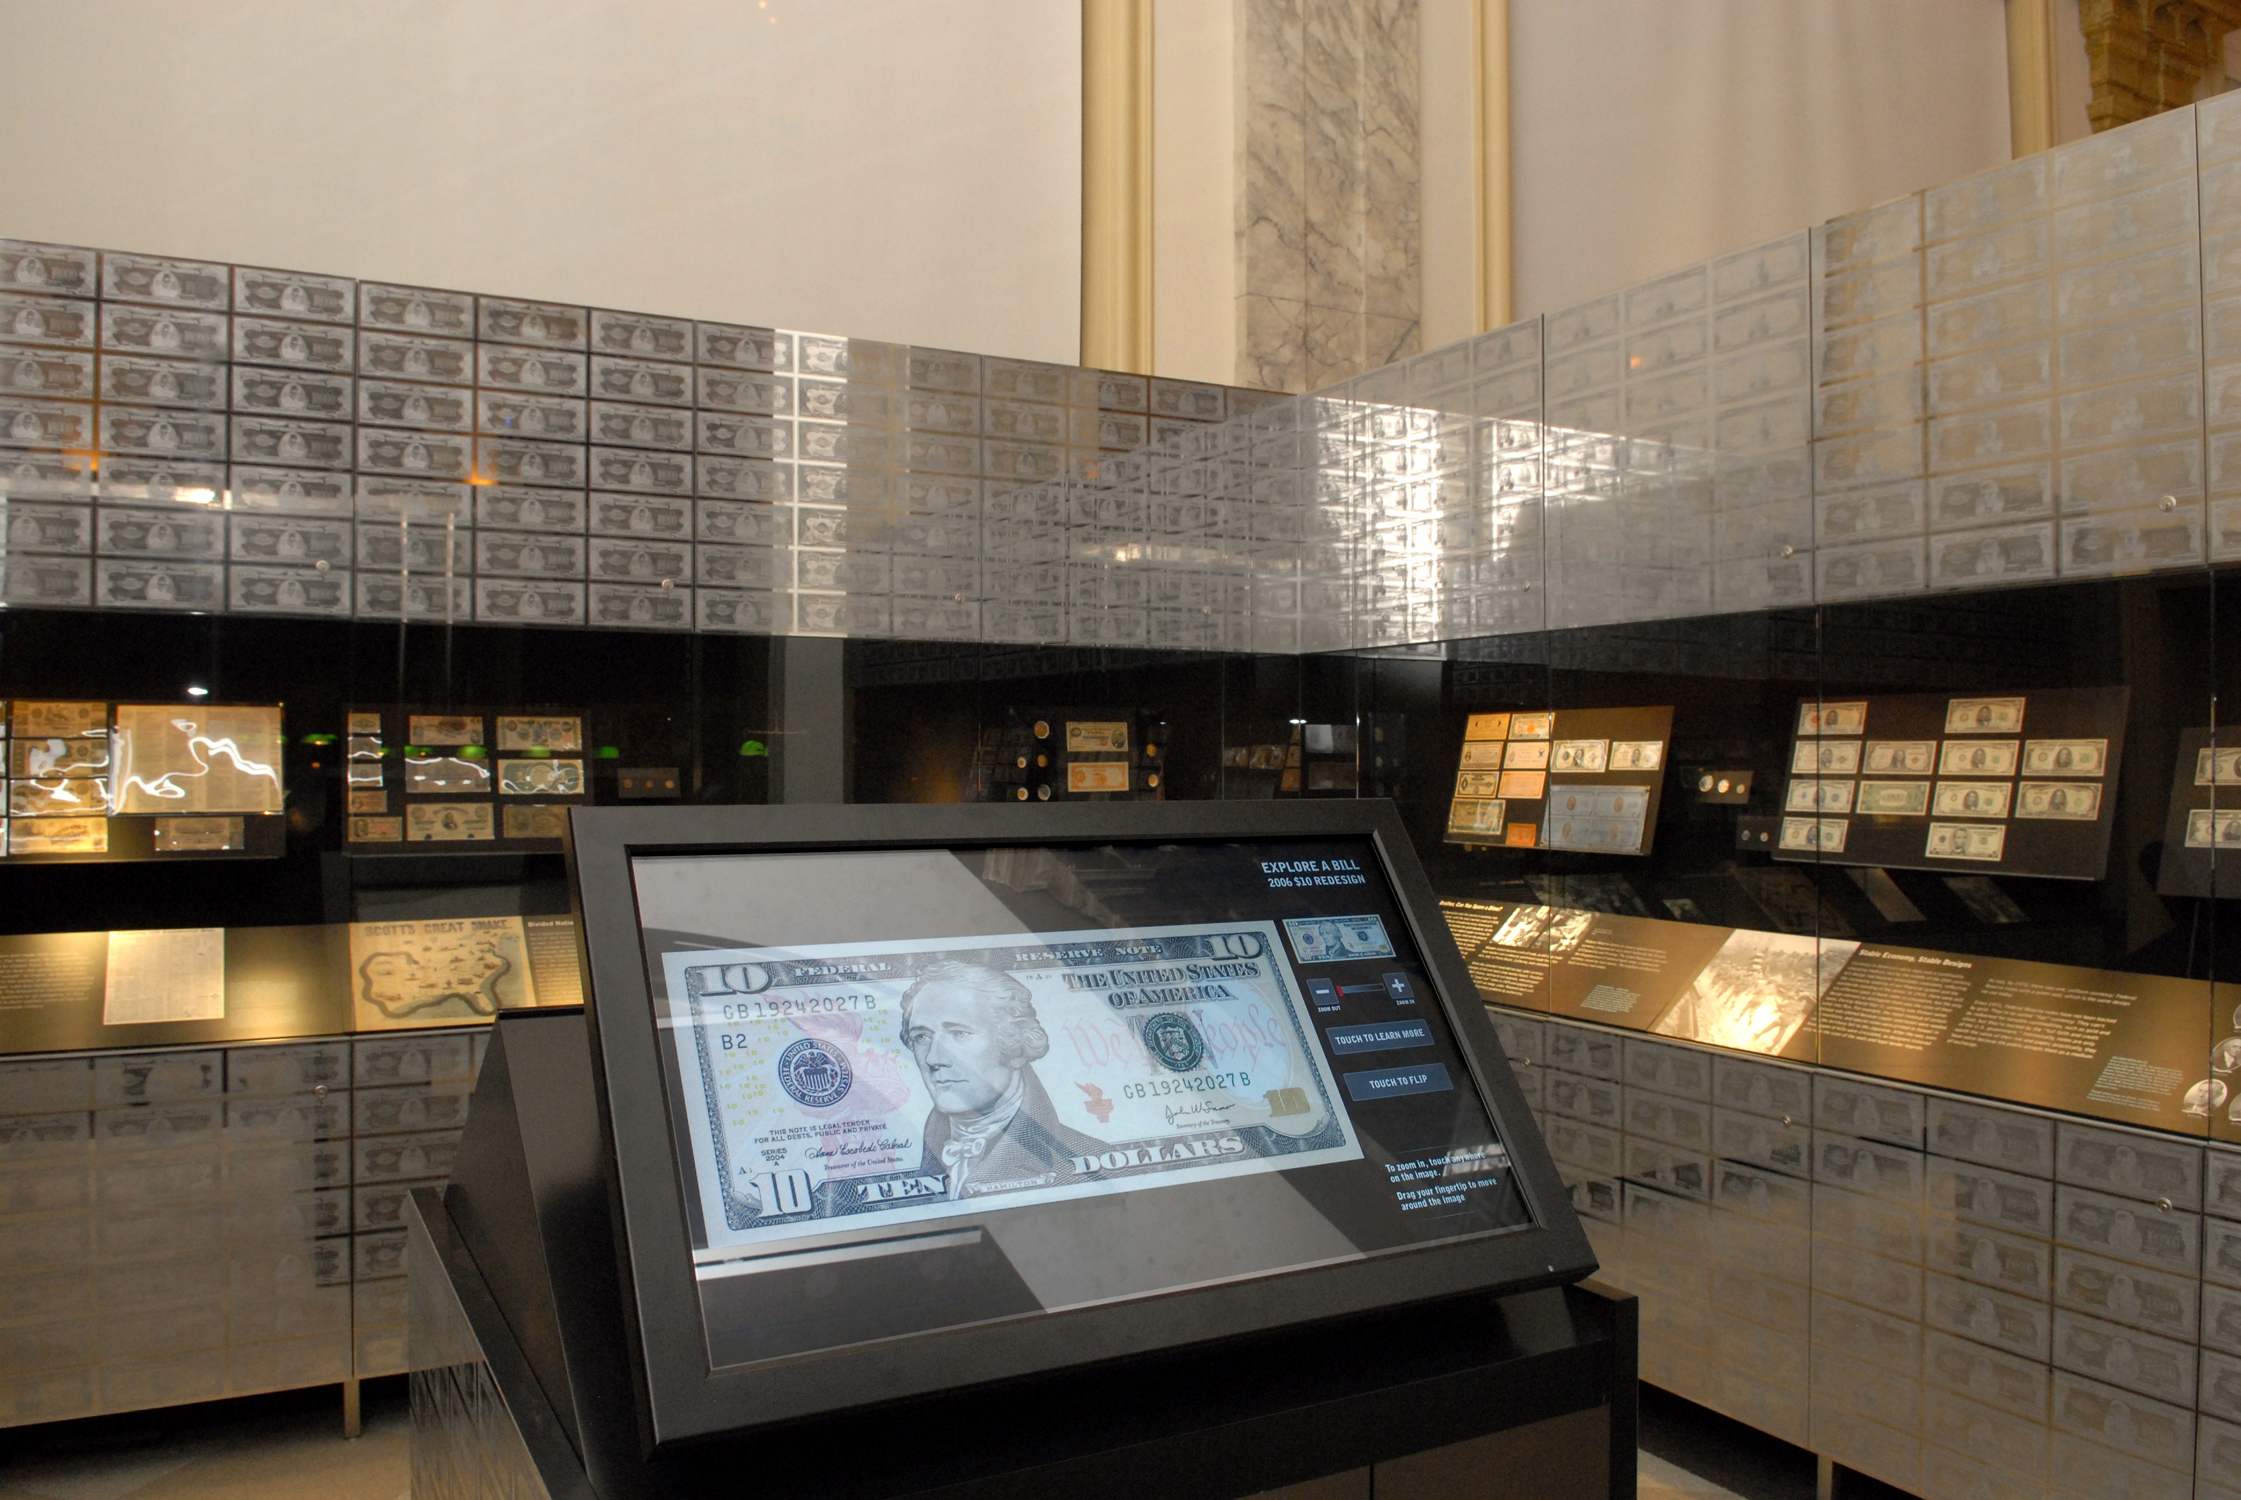 Money Gallery. Image by Elsa Ruiz. Licensed under CC BY-SA 3.0 via Wikimedia Commons.